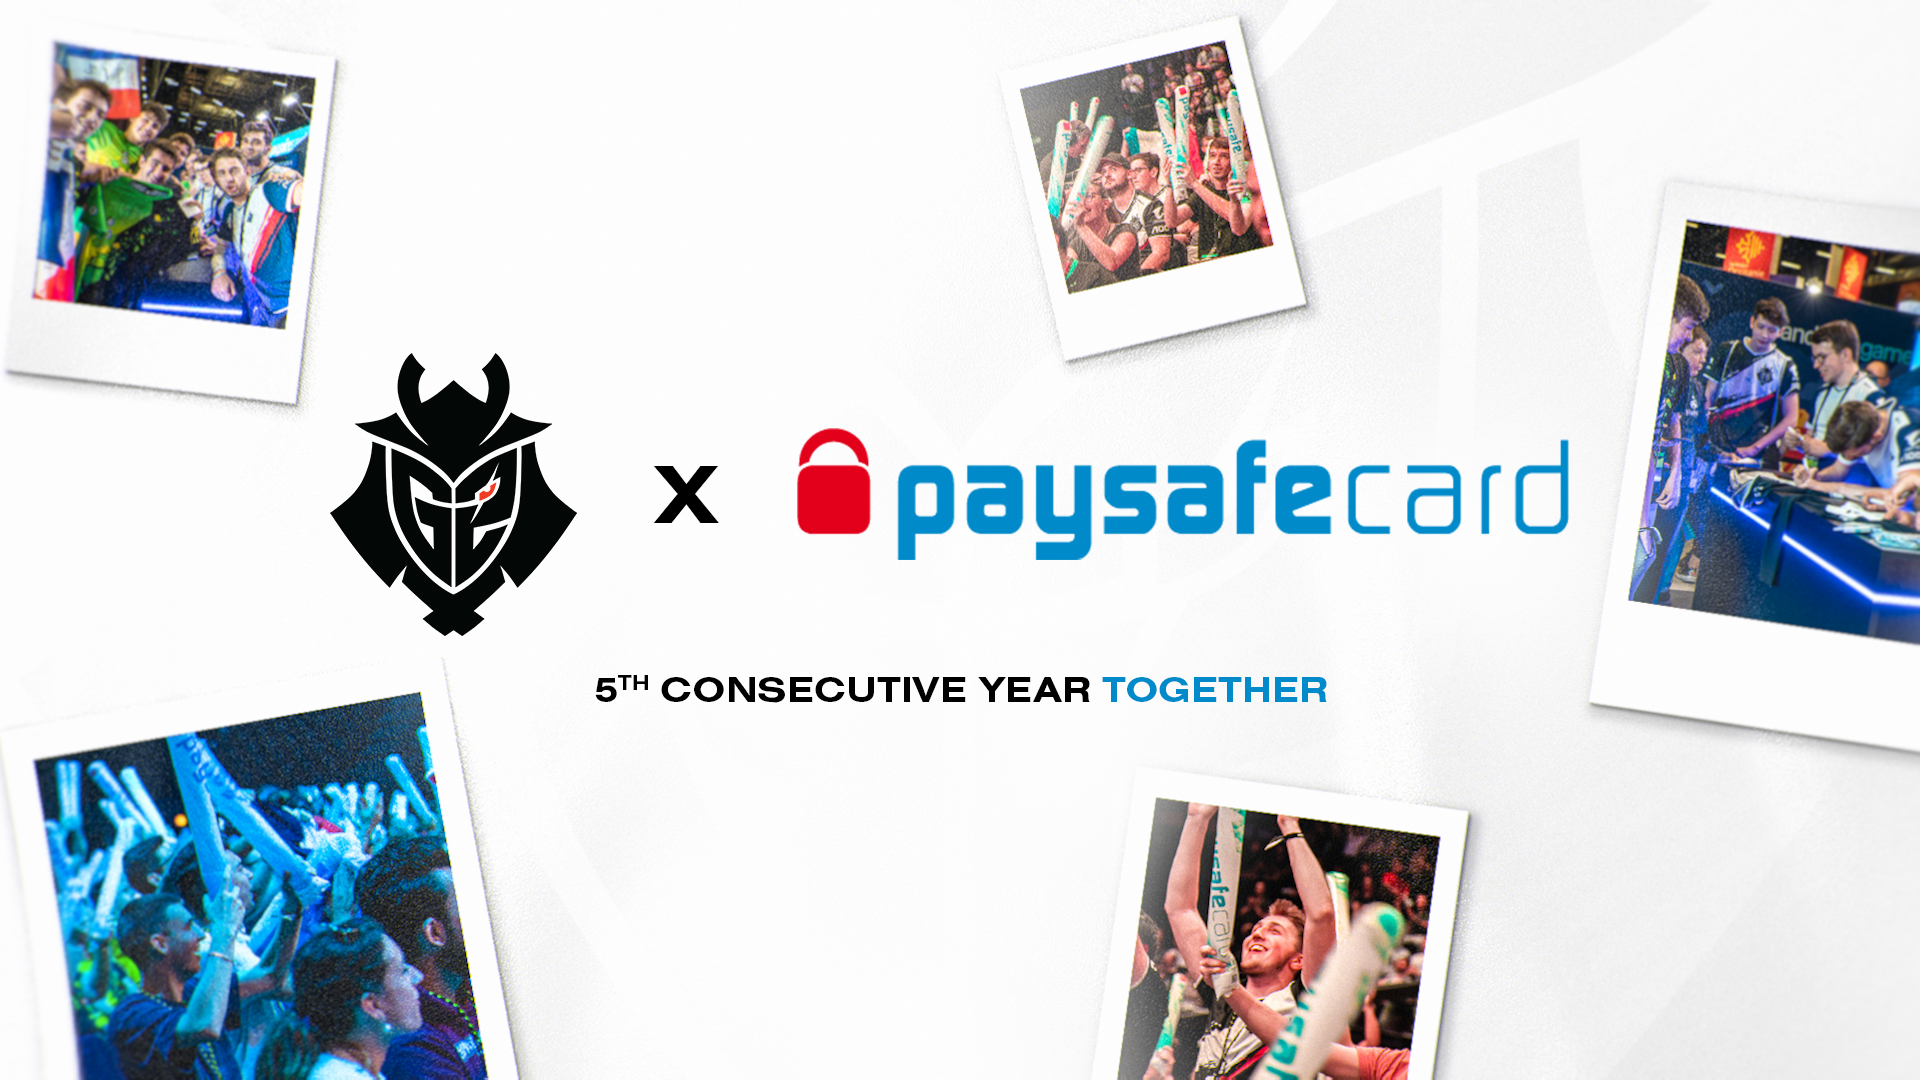 G2 Esports, paysafecard extend partnership into fifth year thumbnail